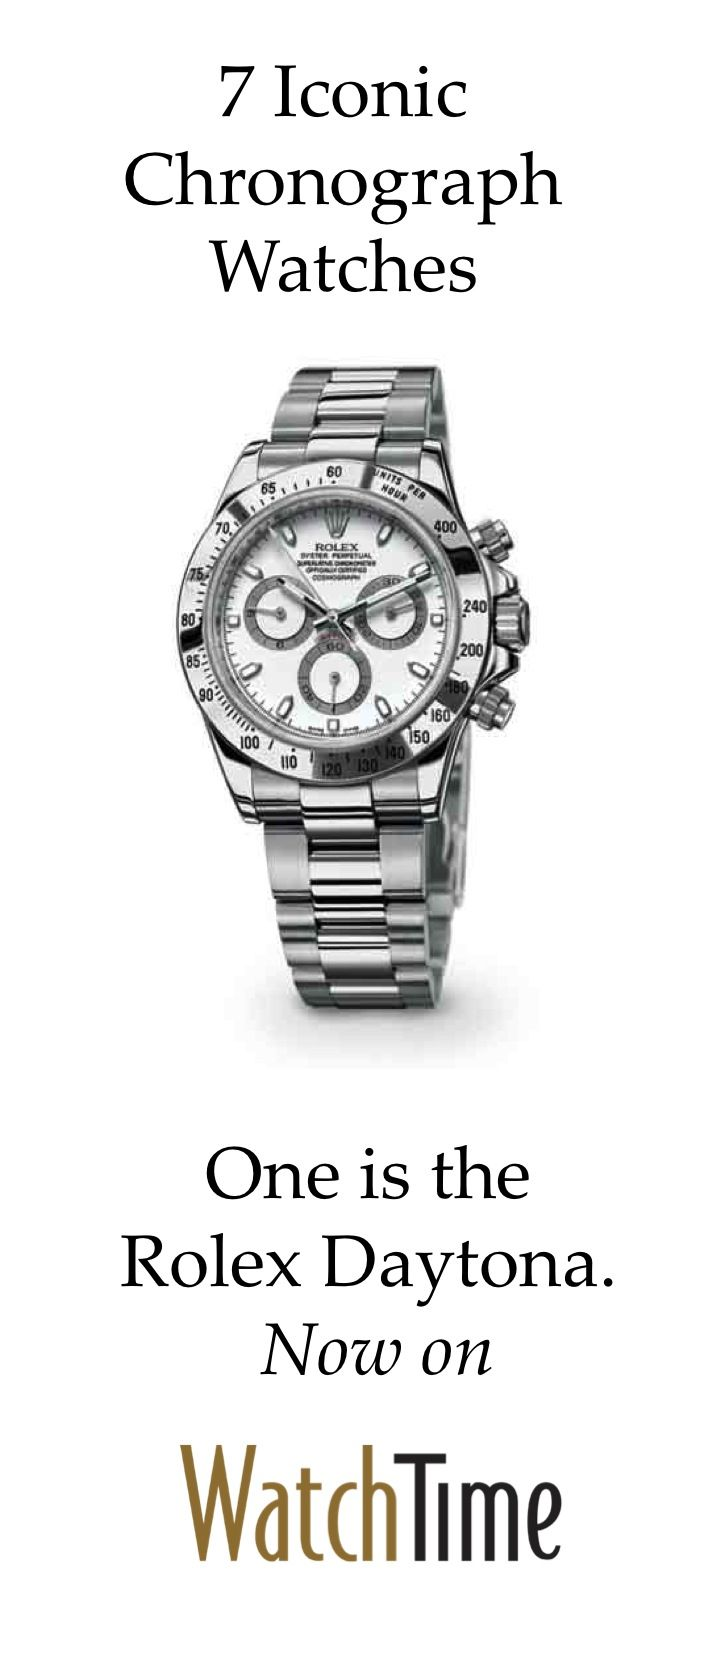 8 best Iconic Chronograph Watches images on Pinterest